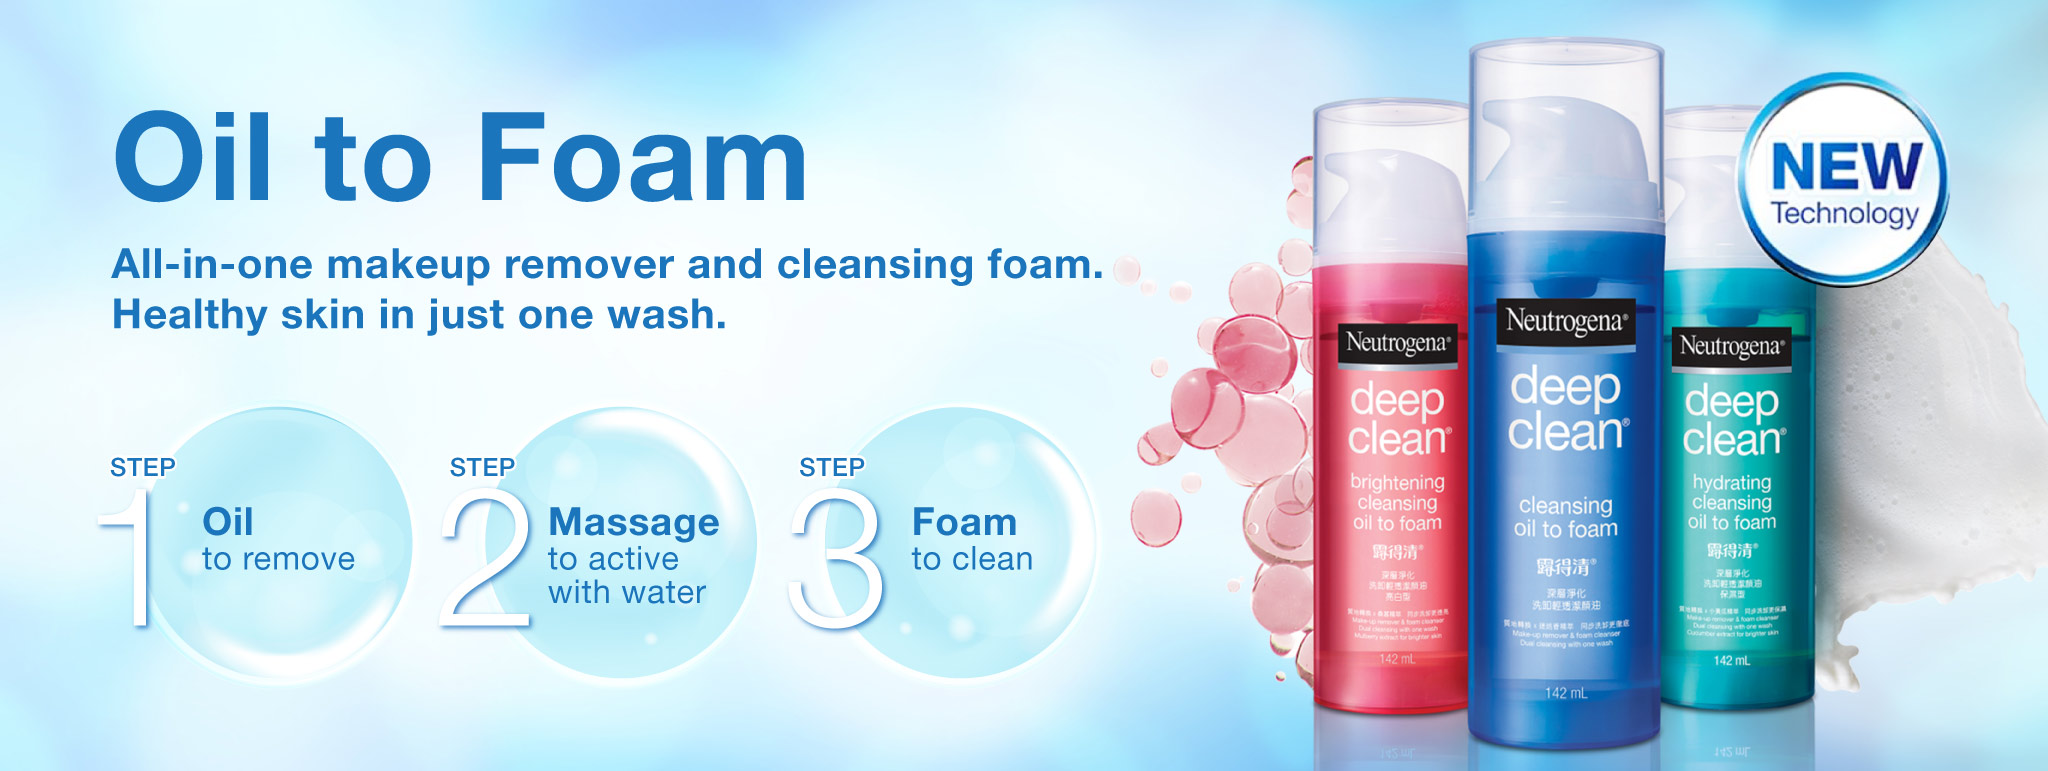 Neutrogena® Oil to Foam